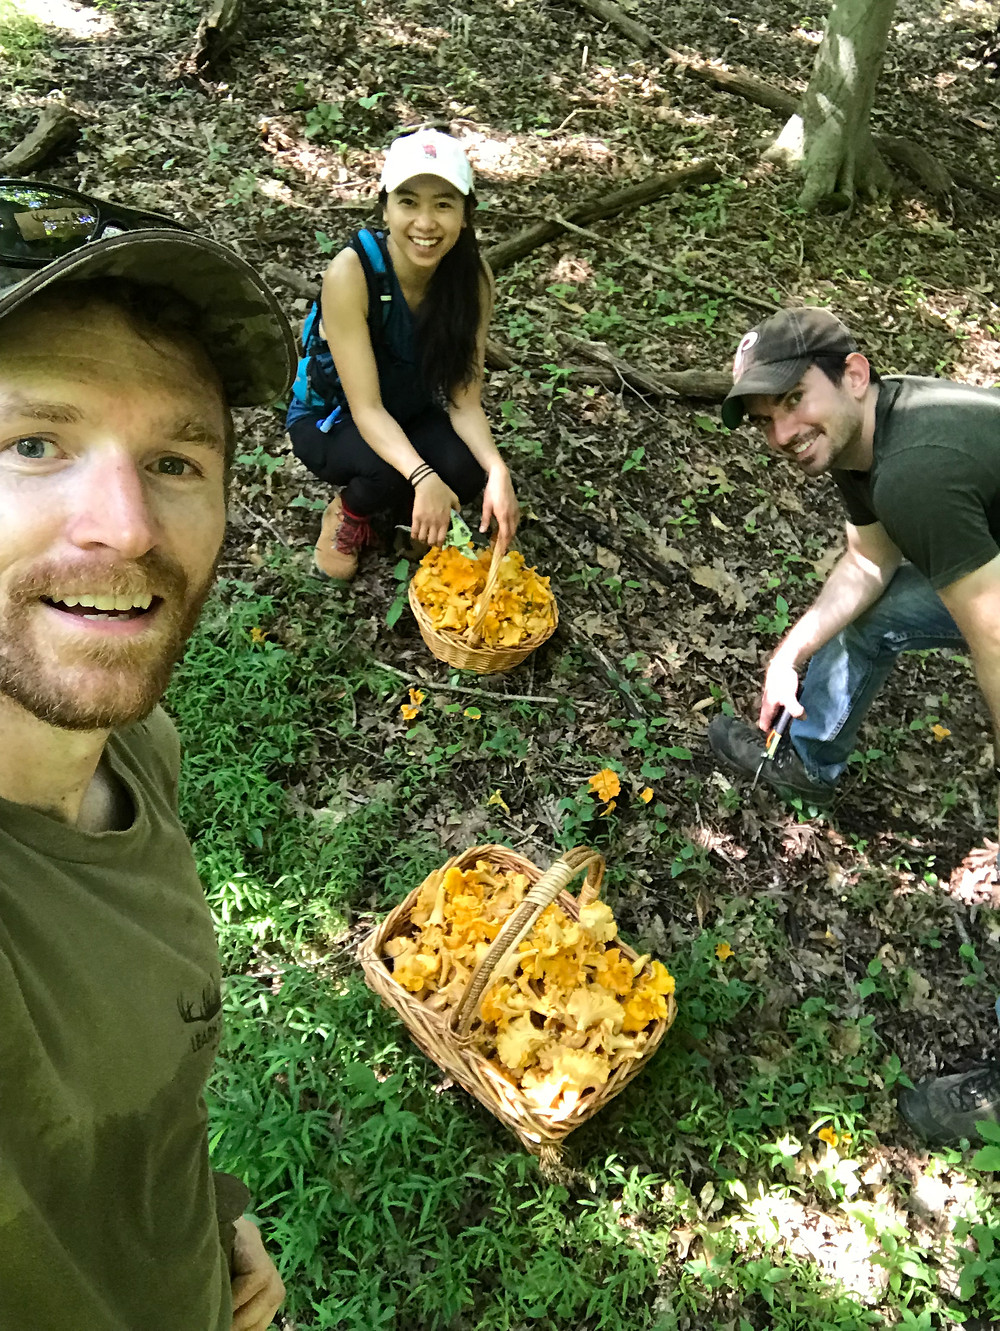 This hunting lesson quickly became a mushroom foraging adventure when we discovered large quantities of the prized Chanterelle mushroom when hiking through the forest.